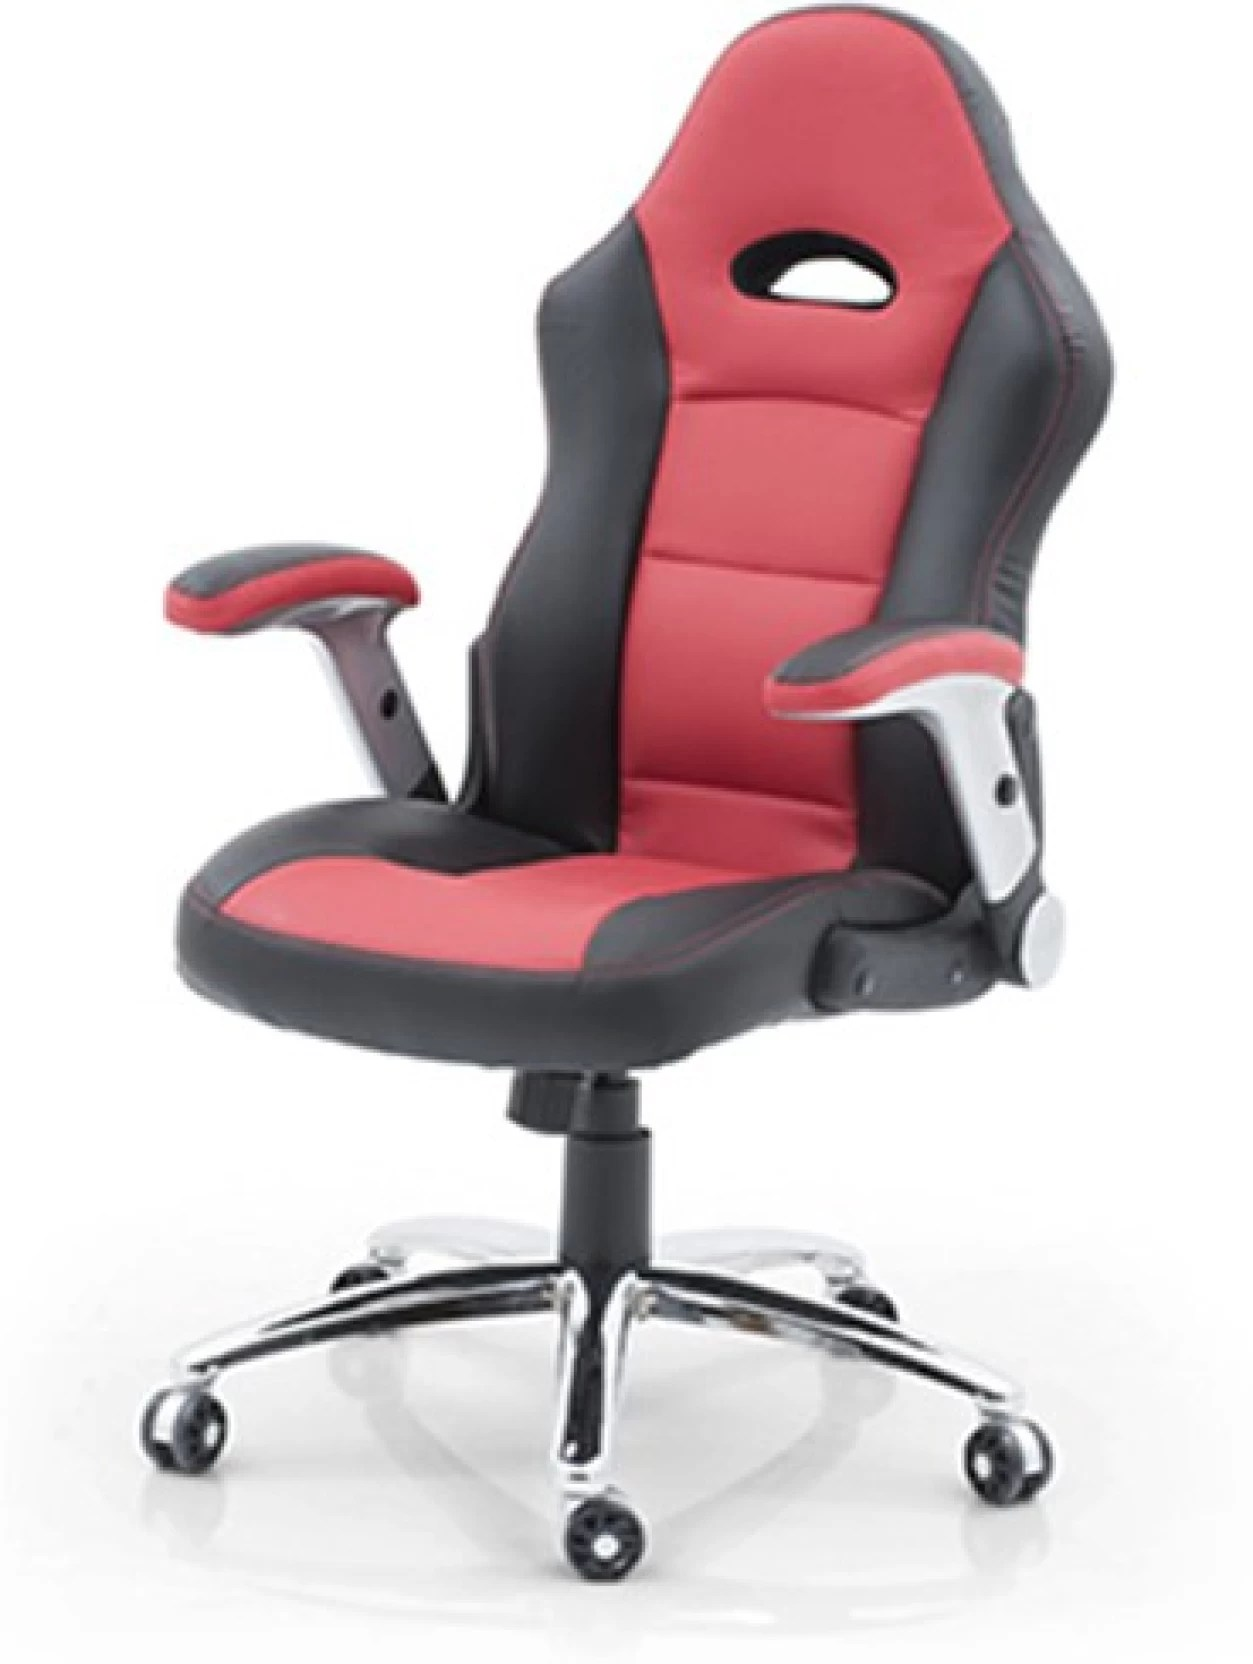 swivel chair online india best flooring for office chairs urban ladder mika leatherette arm price in